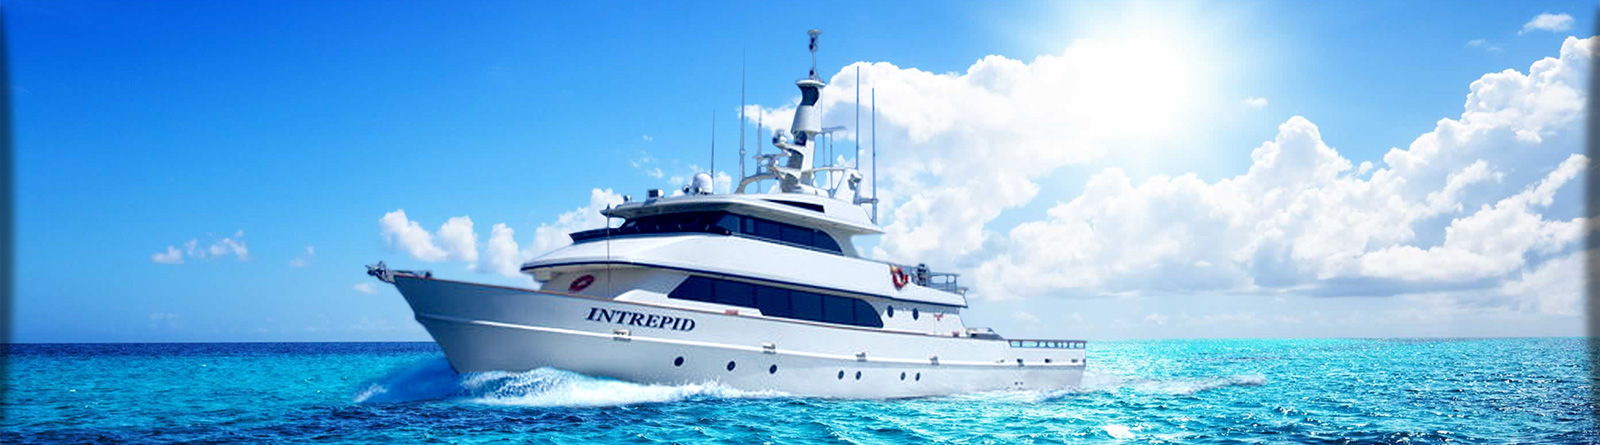 Intrepid Sportfishing